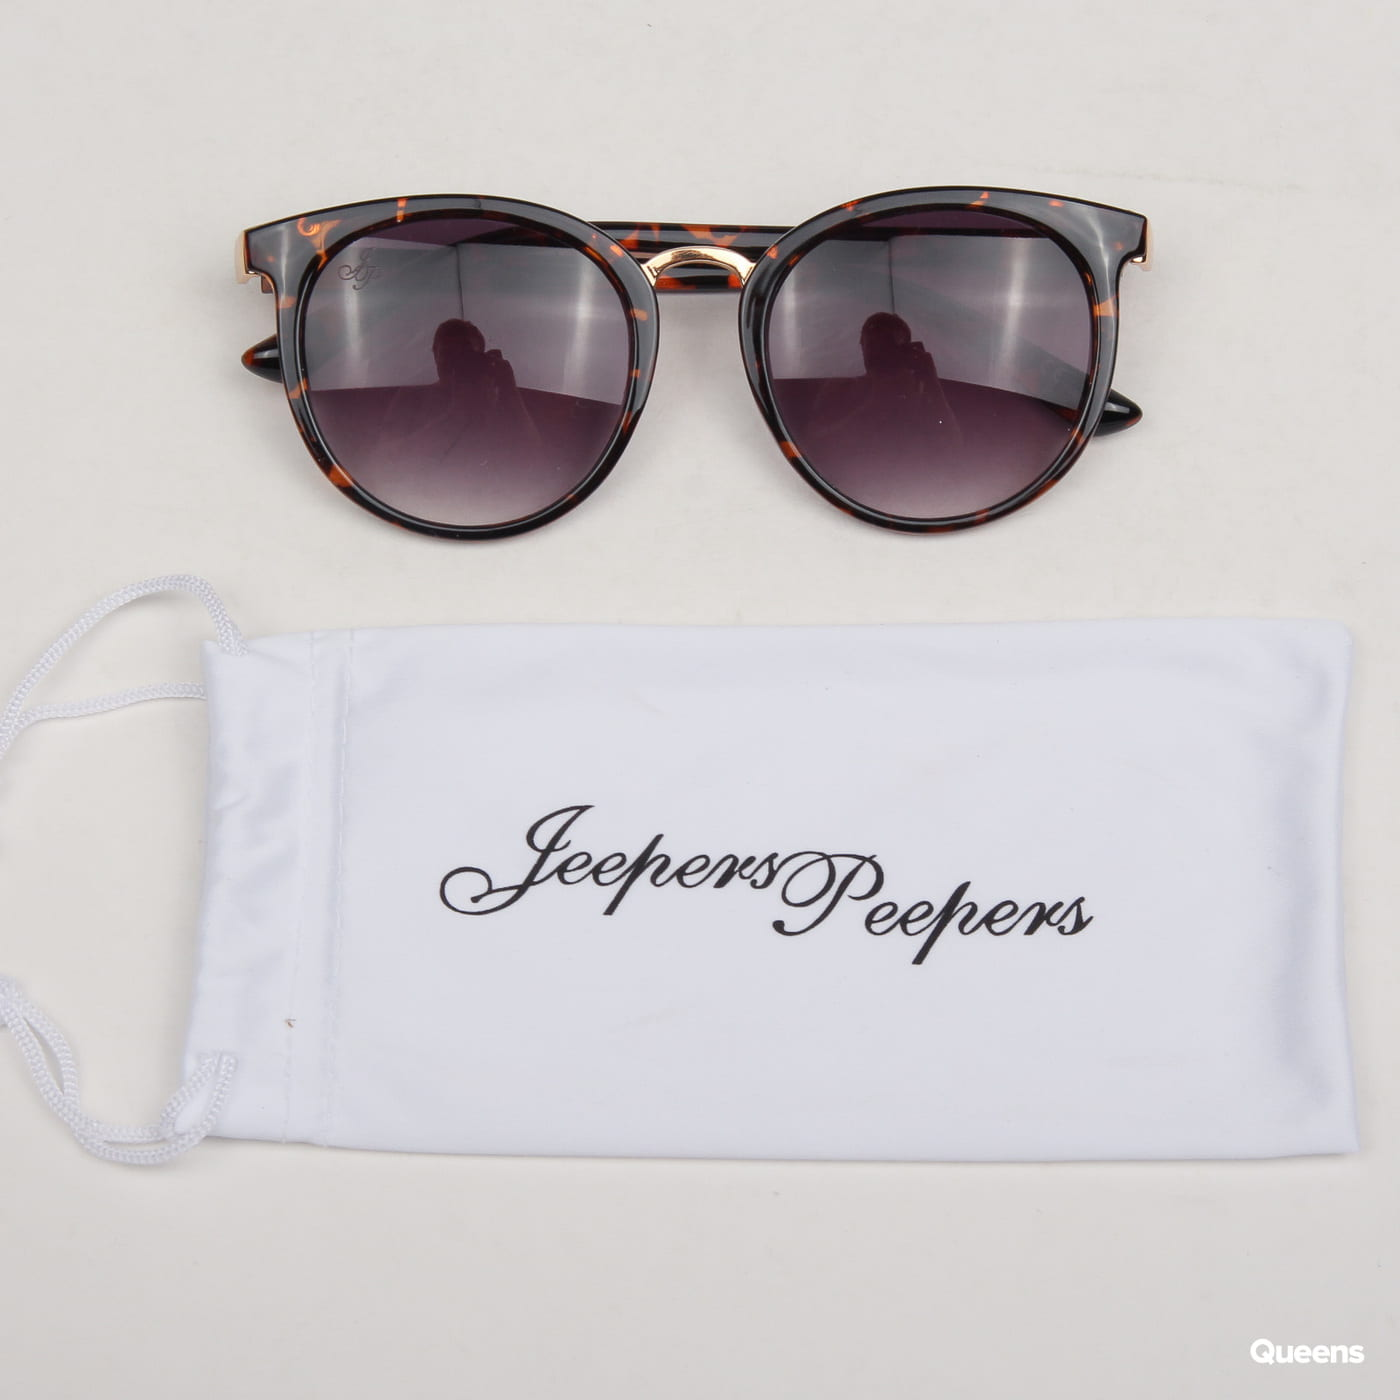 Jeepers Peepers Round Tort Sunglasses čierne / hnedé